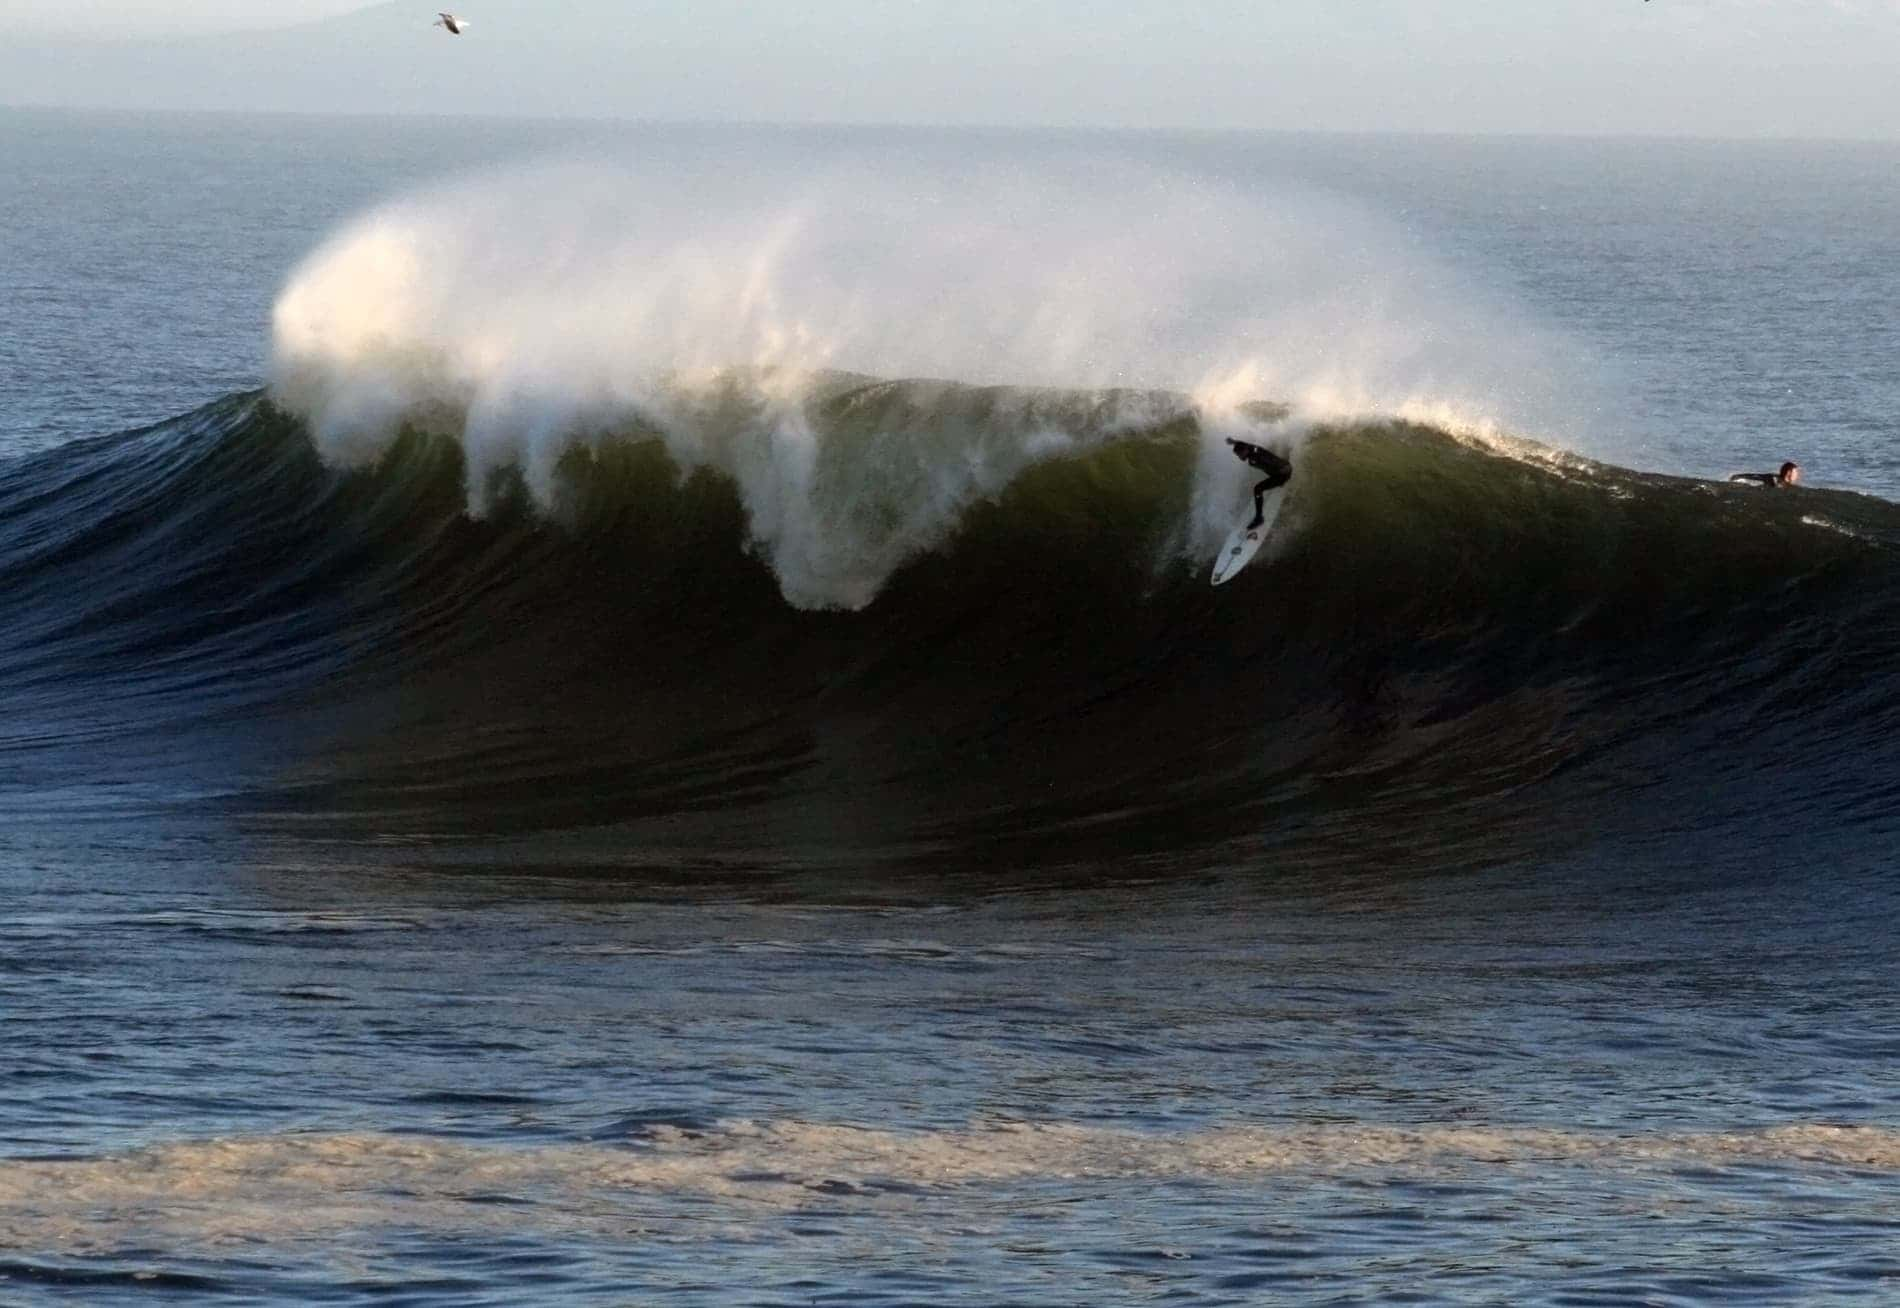 Surfing is one of the best things to do in Santa Cruz